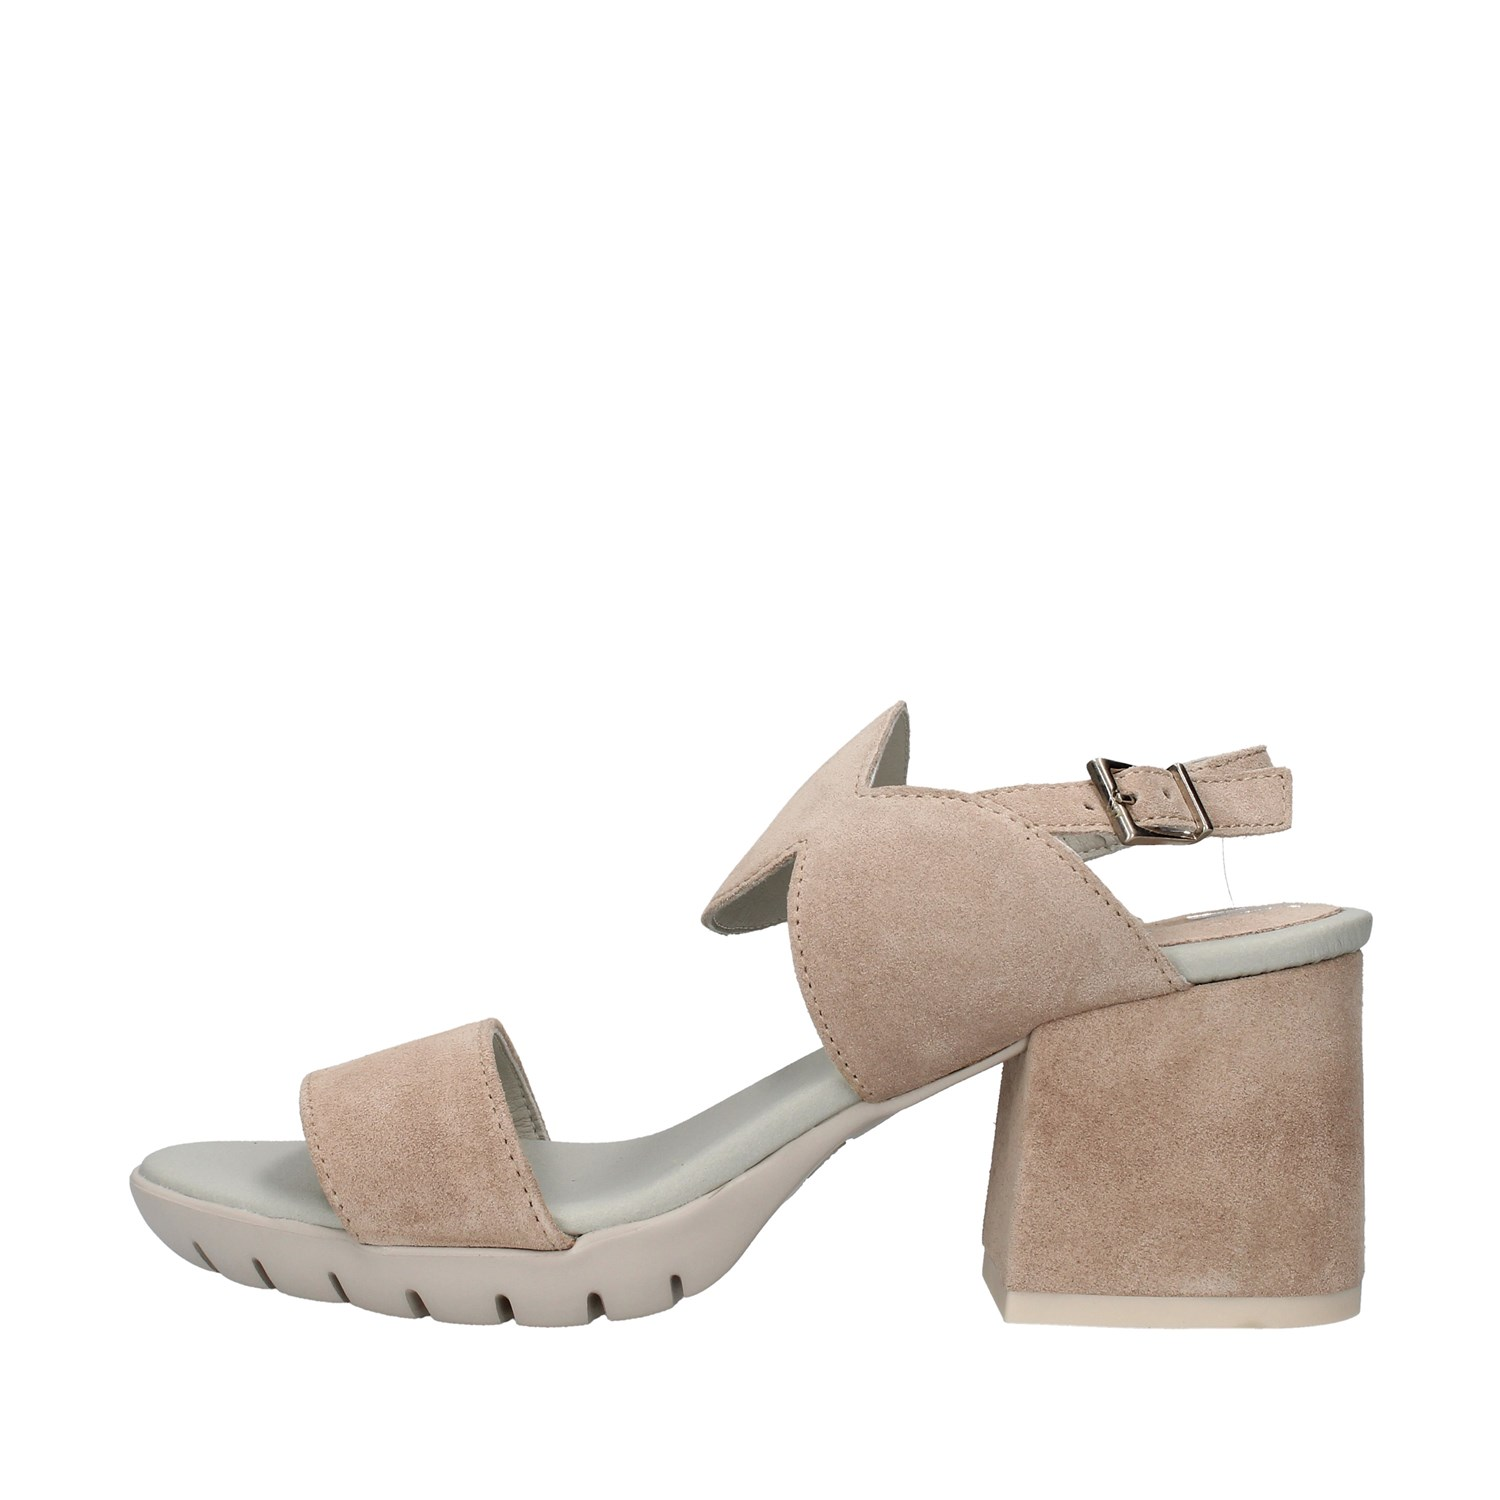 Callaghan Shoes Woman With heel BEIGE 22809